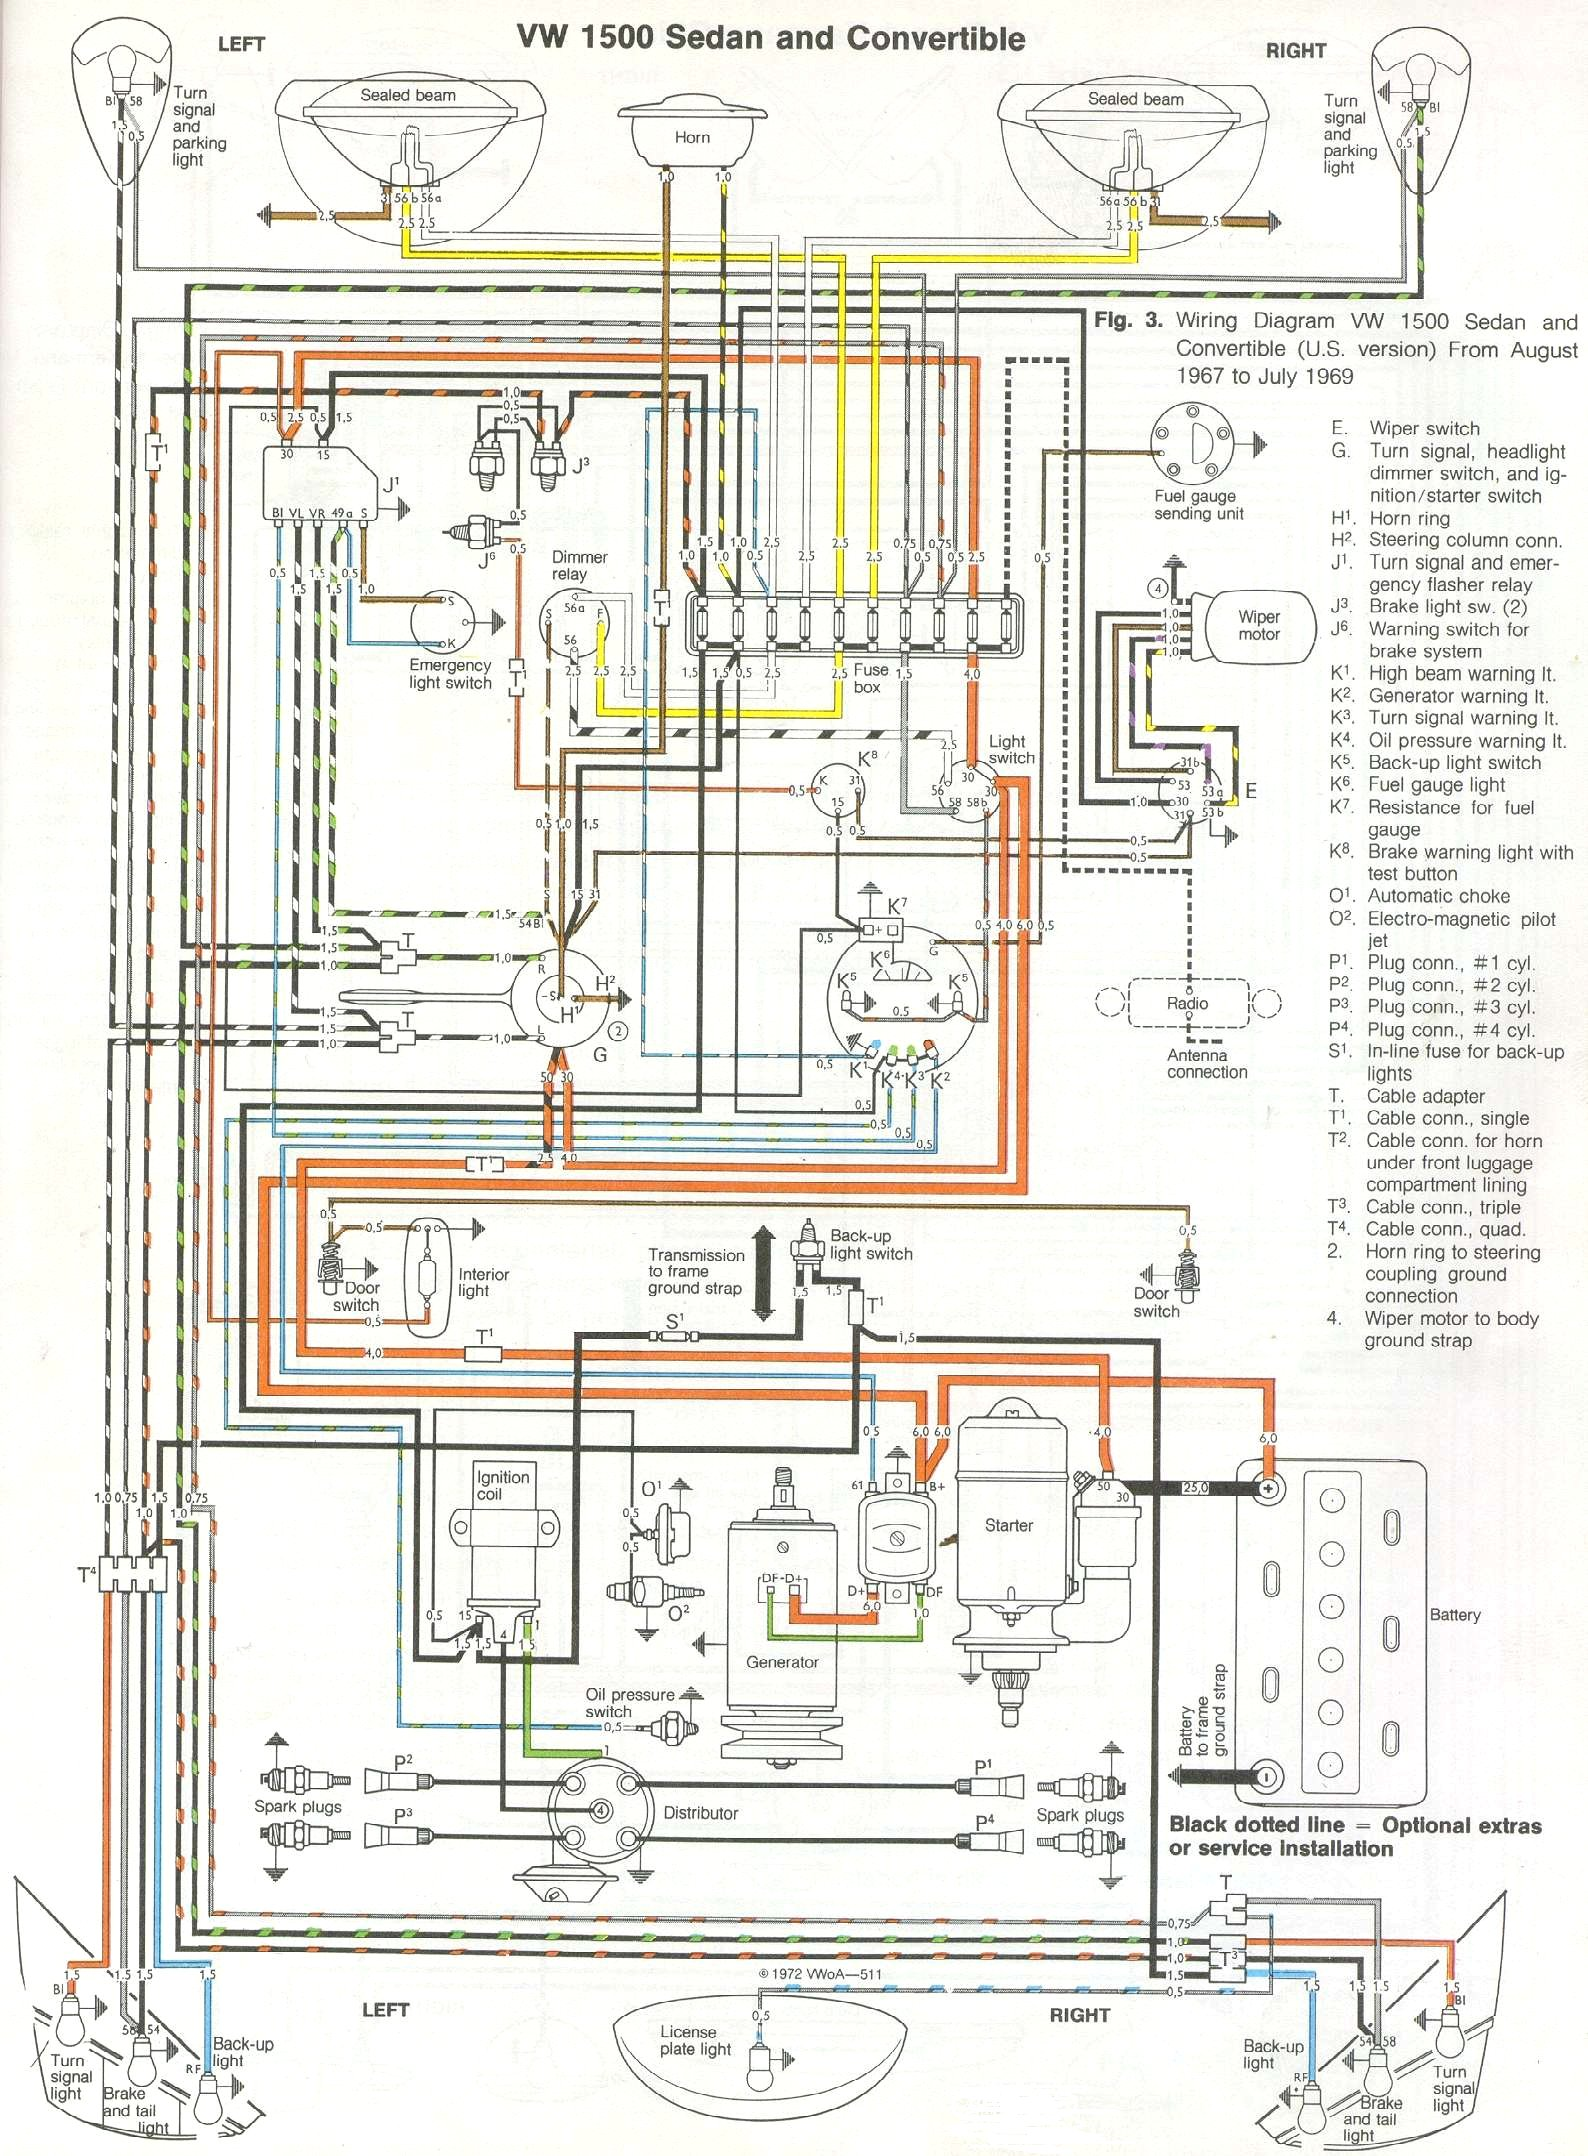 bug_6869 k5 blazer wiring harness diagram wiring diagrams chevy silverado 88 K5 Blazer Wiring Diagram at alyssarenee.co